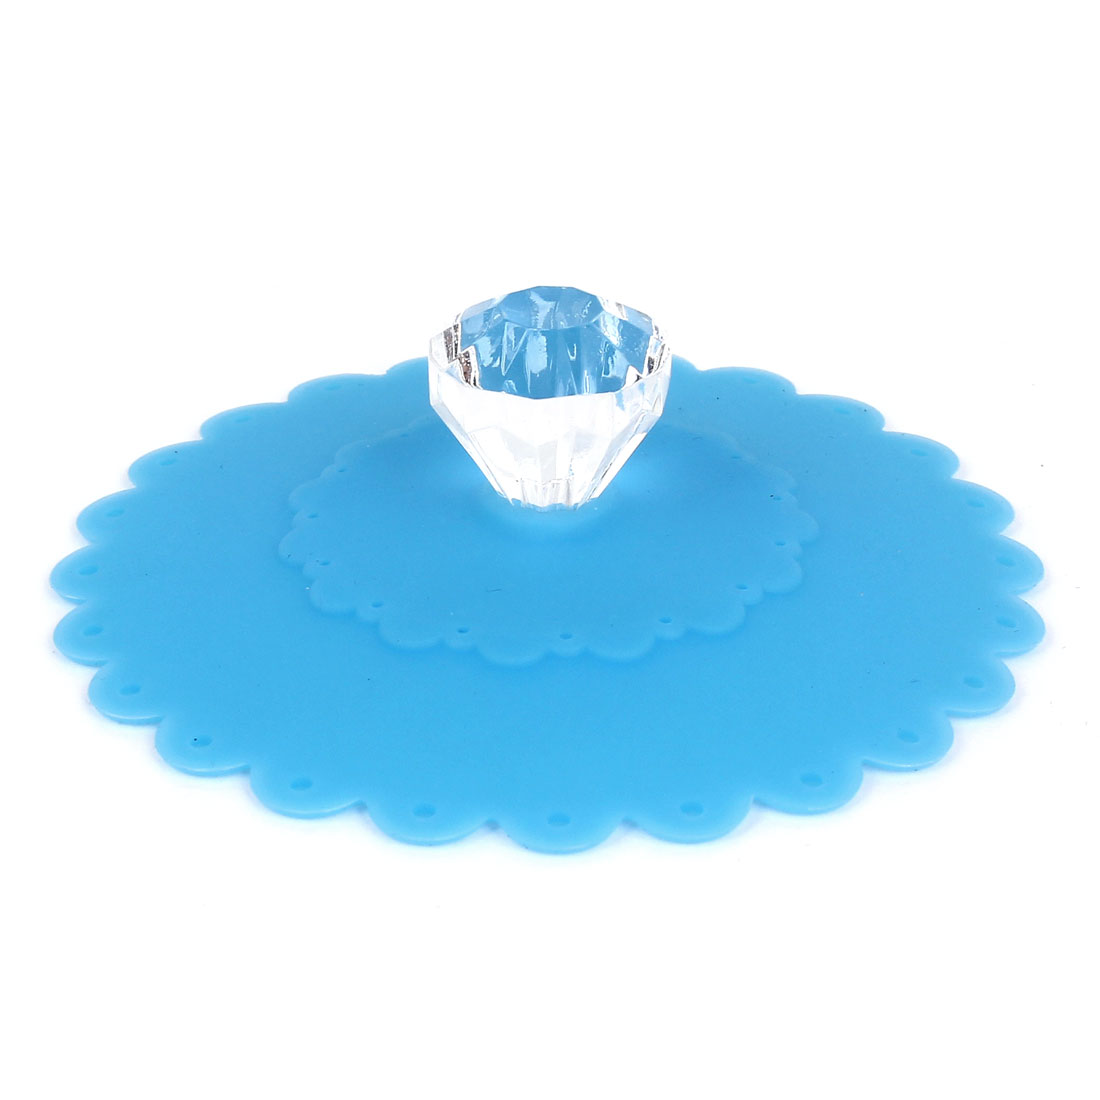 Faux Crystal Knob Silicone Coffe Tea Water Cup Mug Dust Cover Lid Blue